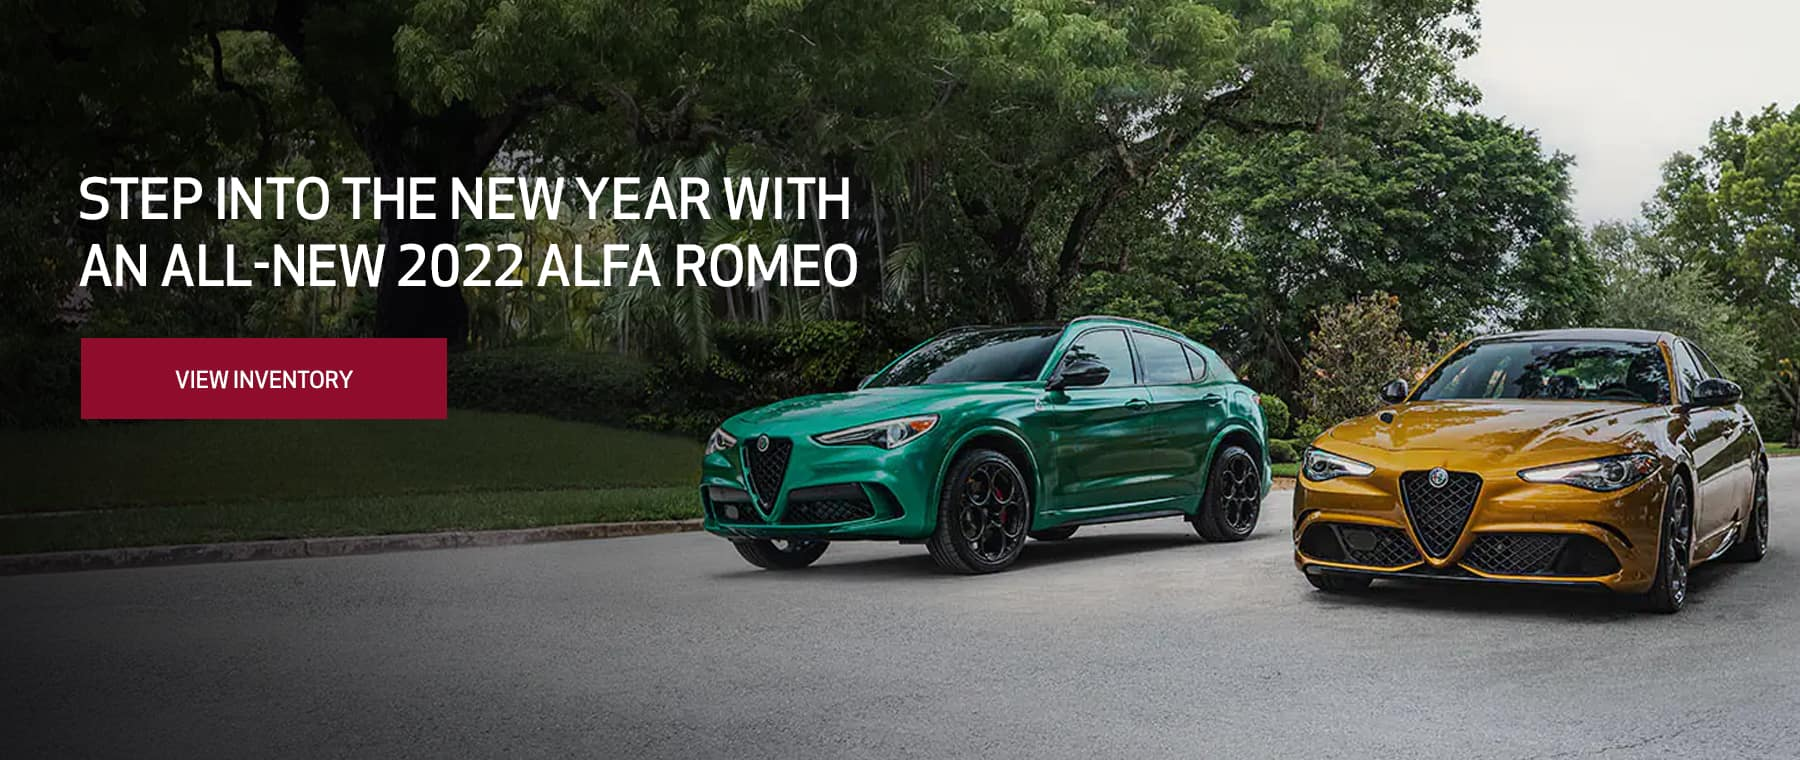 Momentum Alfa Romeo's New 2022 Inventory Has Arrived! Shop Now While They Last